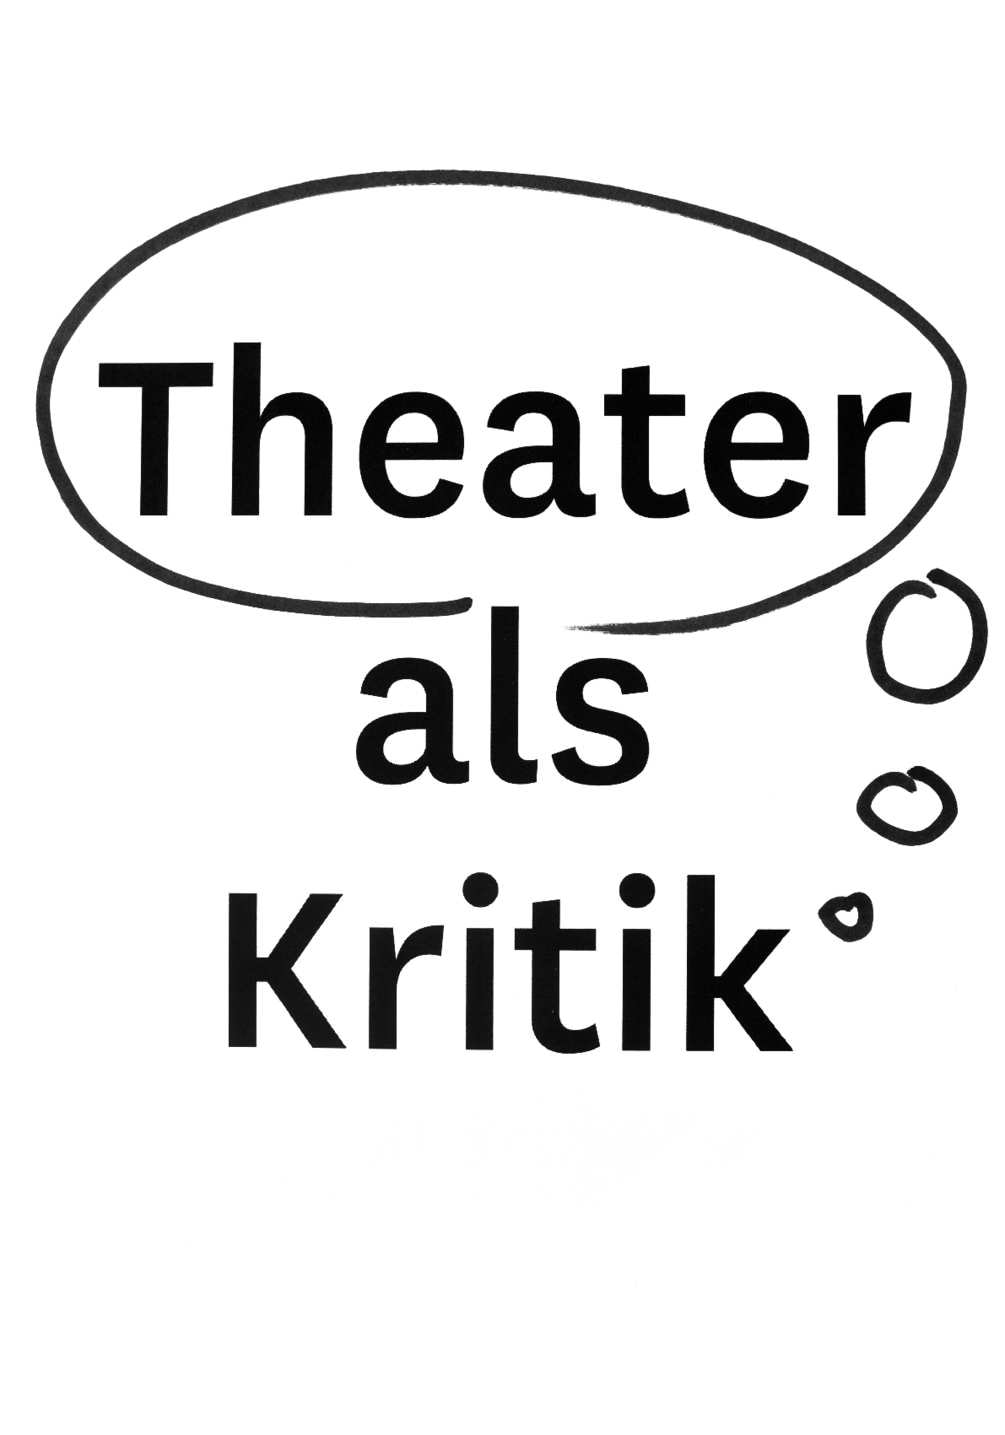 theater-as-critique-slip-17-1005x1435px